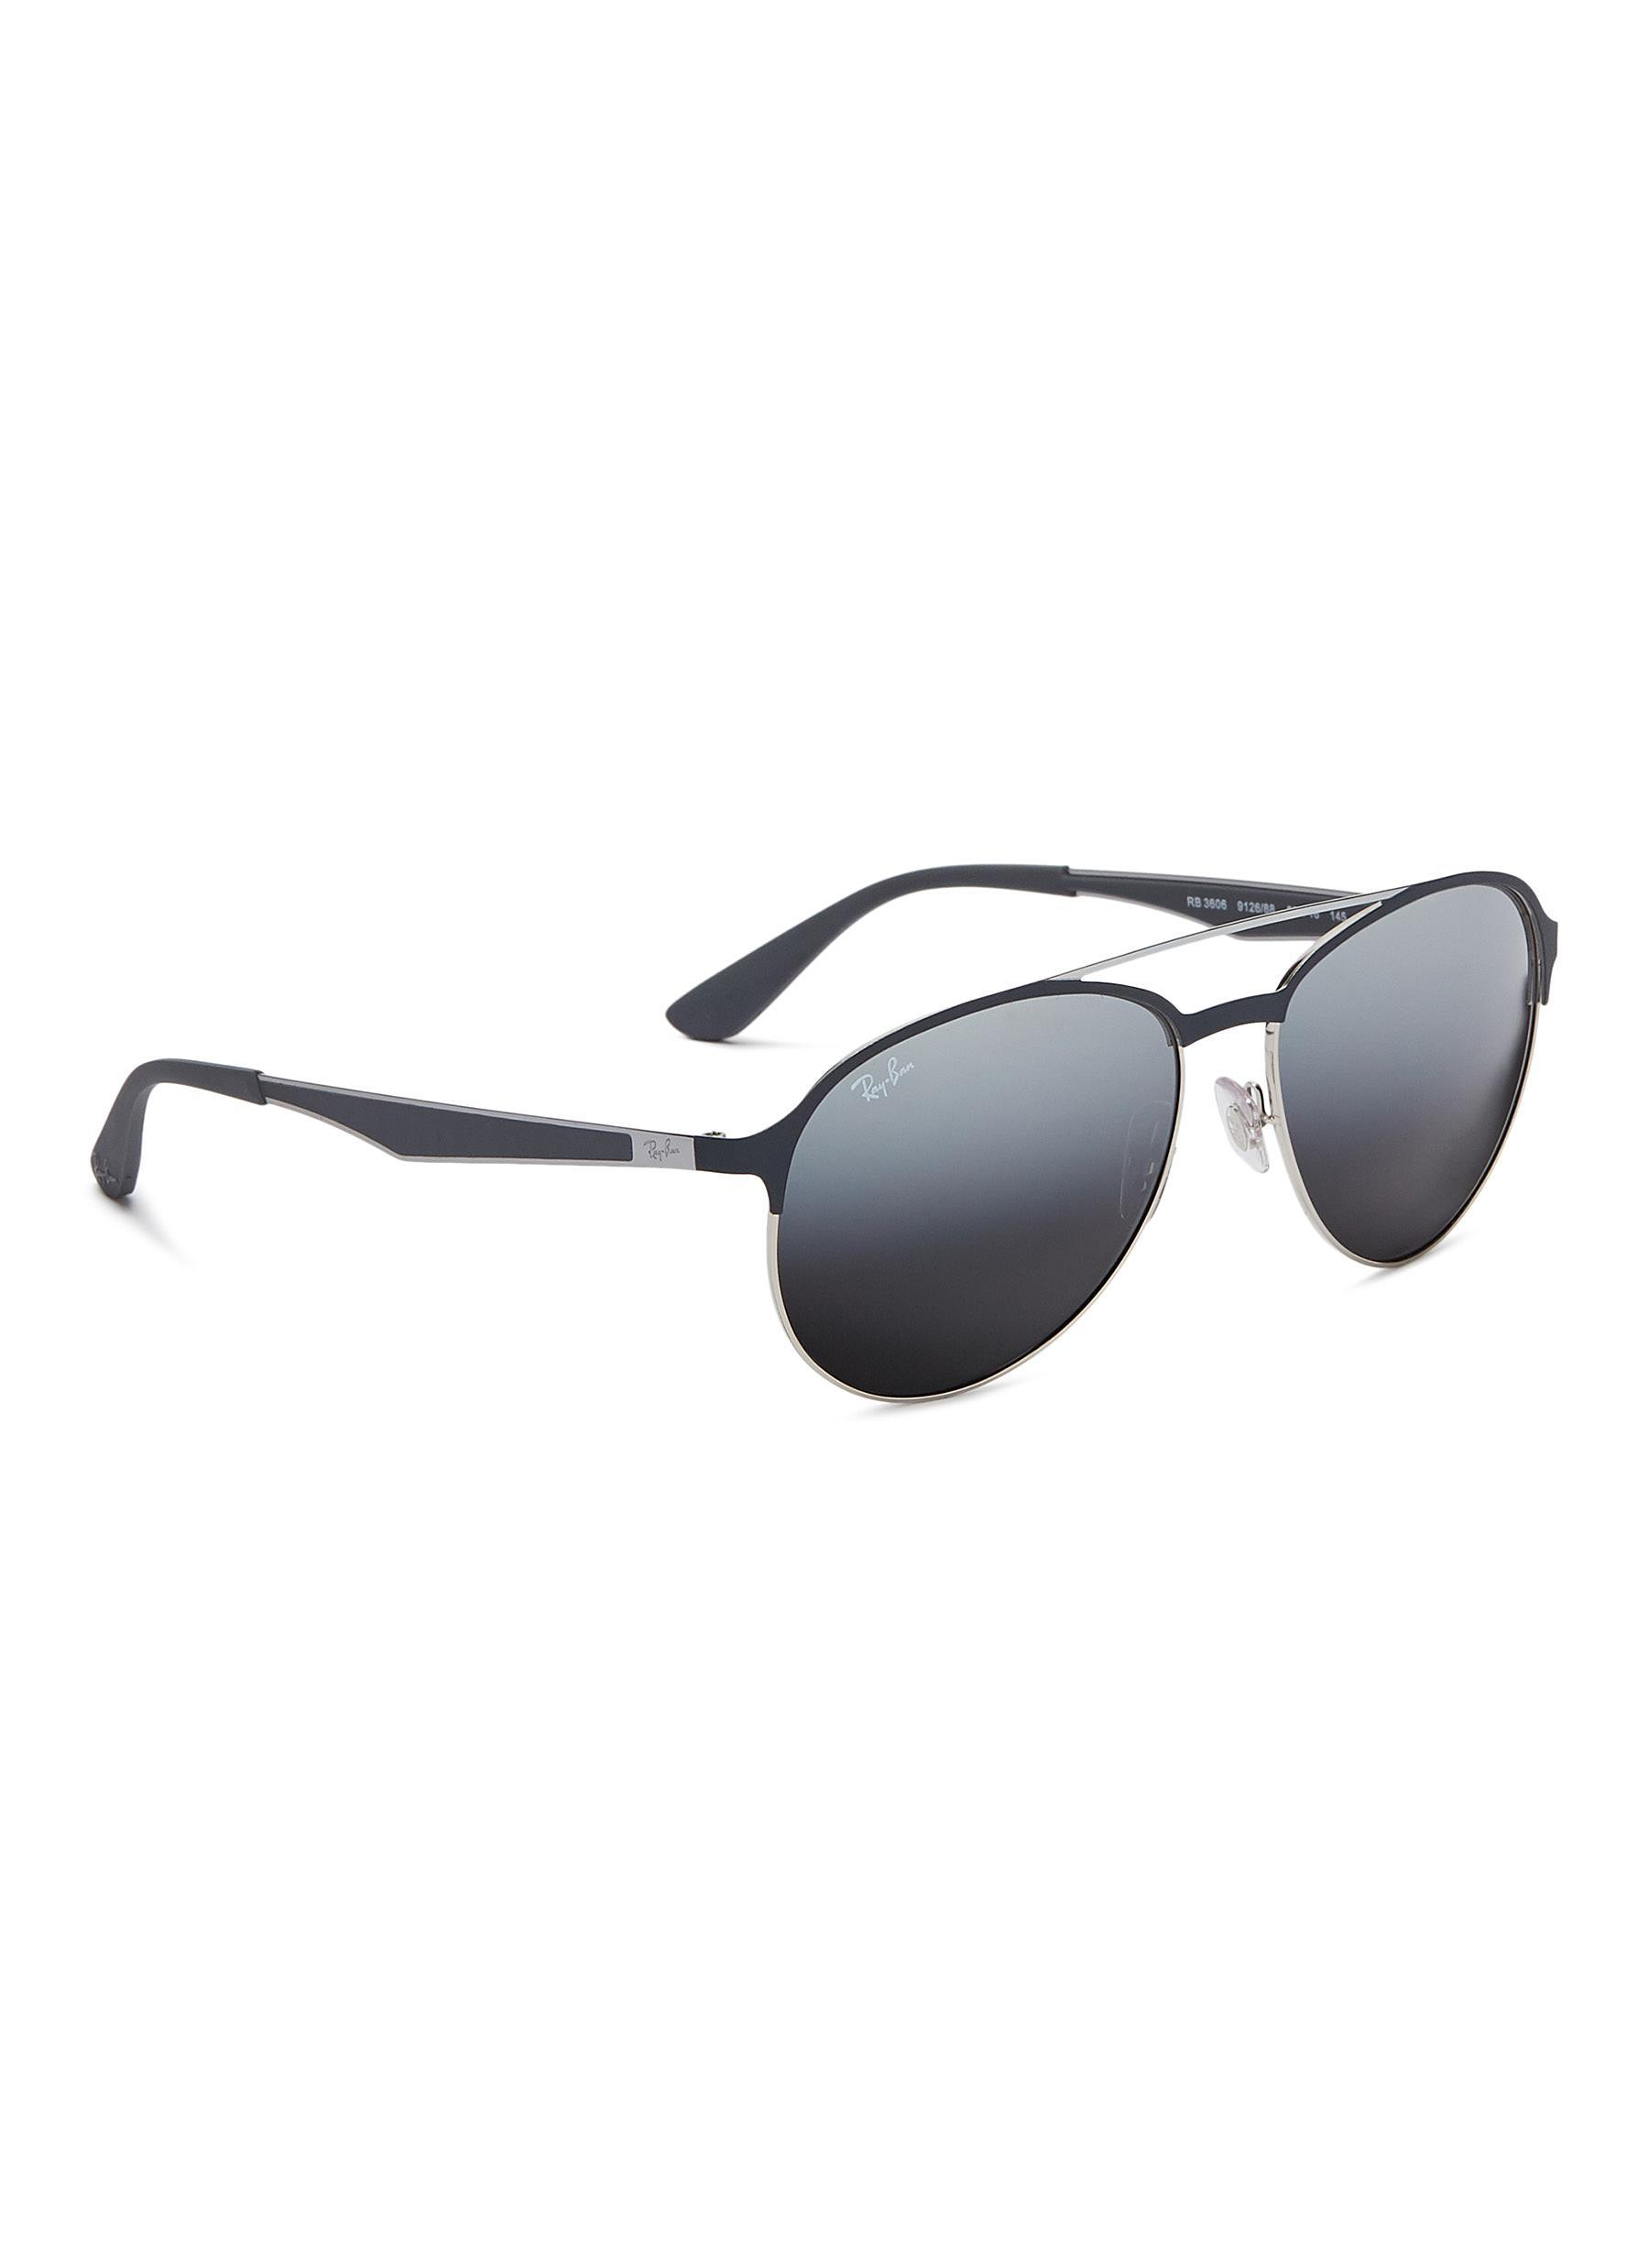 f9a50e15e2 ... best price ray ban gray rb3606 mirror metal aviator sunglasses for men  lyst. view fullscreen